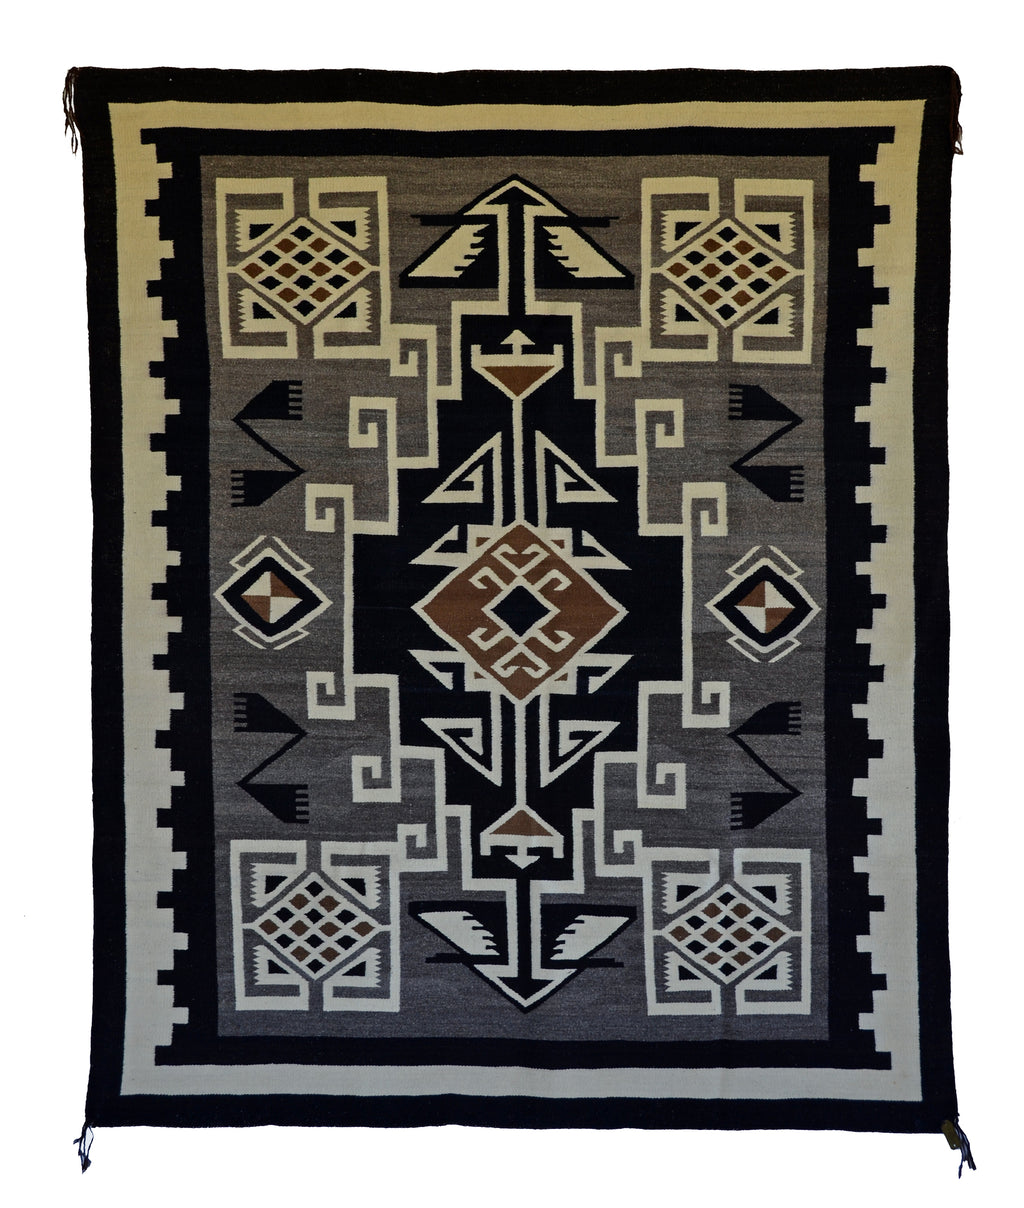 "HOLD Two Grey Hills Navajo Rug : Historic : PC 139 : 52"" x 64"" - Getzwiller's Nizhoni Ranch Gallery"